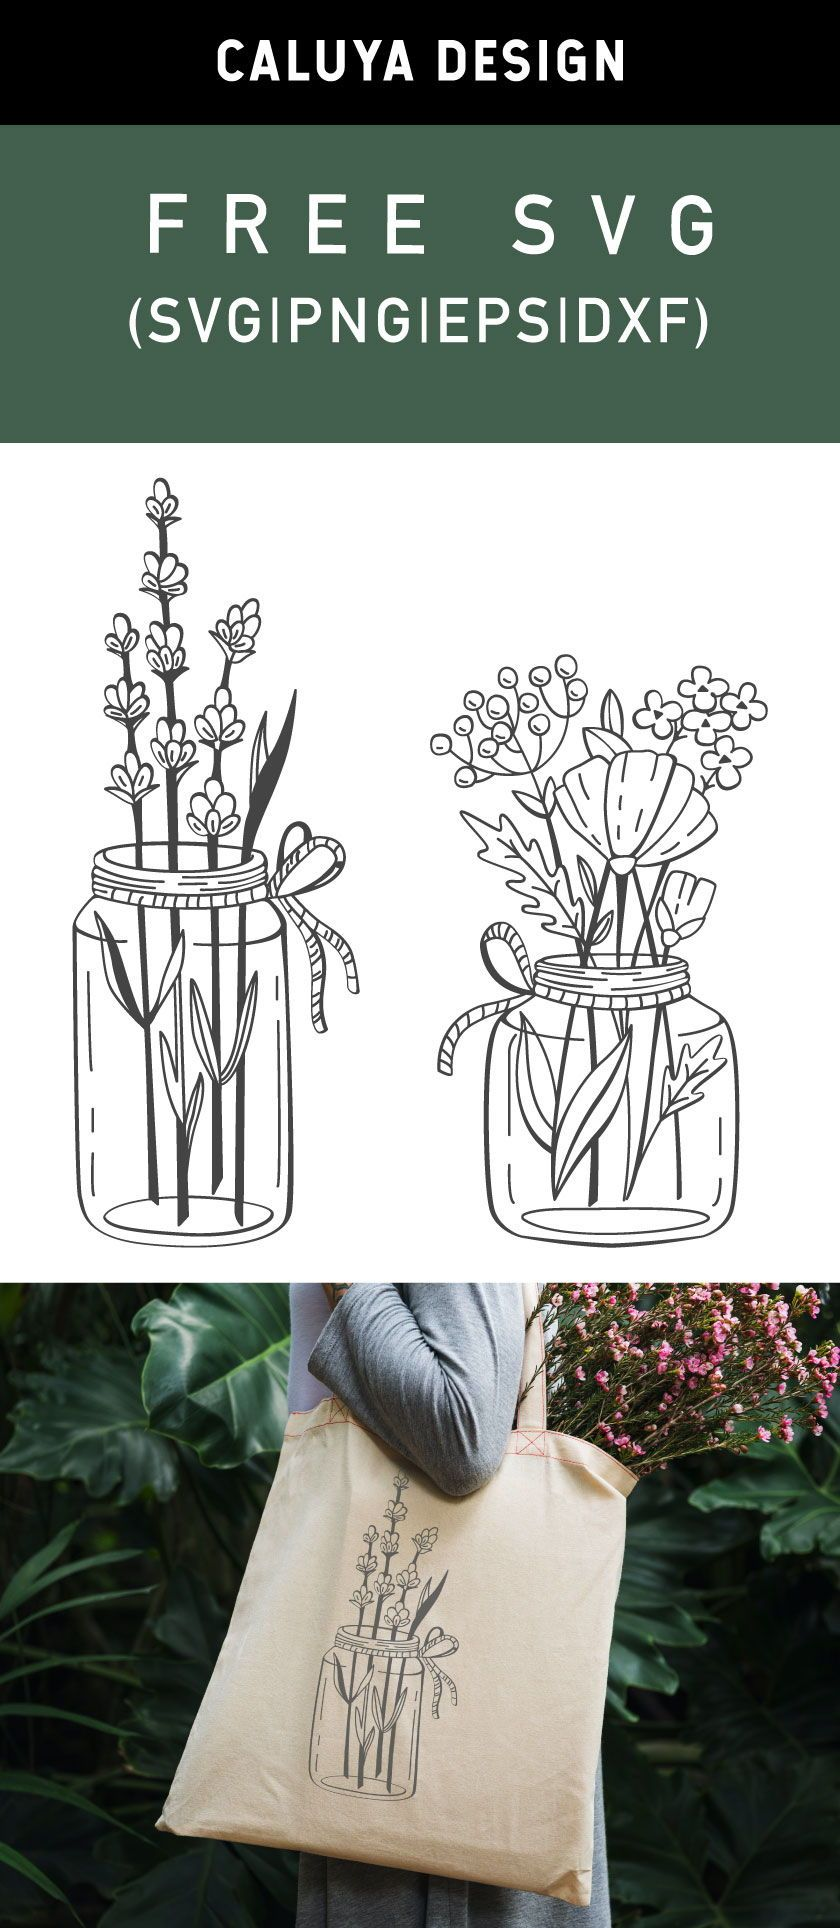 Free Mason Jar With Flowers SVG, PNG, EPS & DXF by Caluya Design